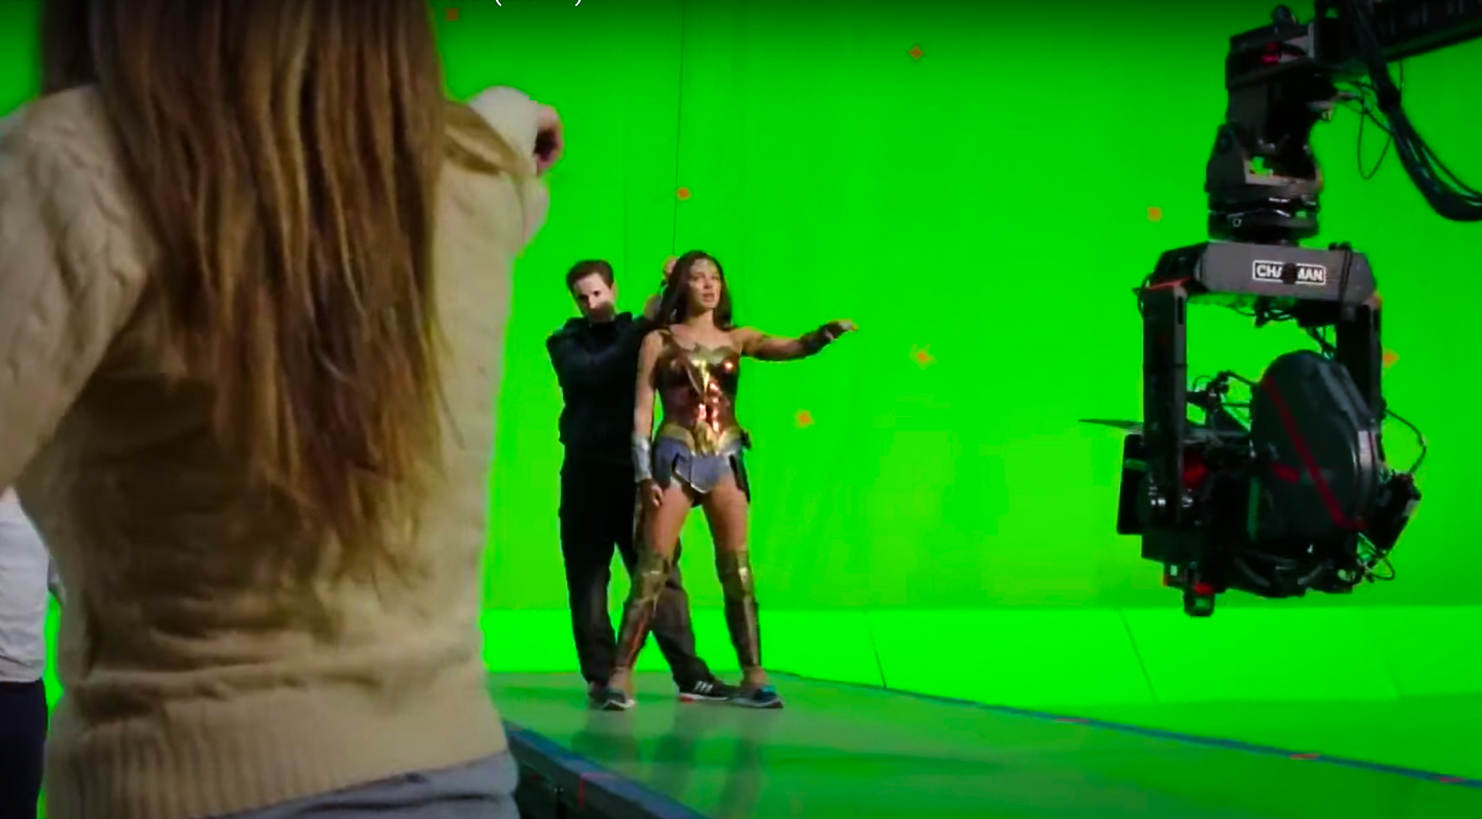 MG Action, Martin Goeres, Wonder Woman, Gale Gadot, Stunt Rigging, Deutschland